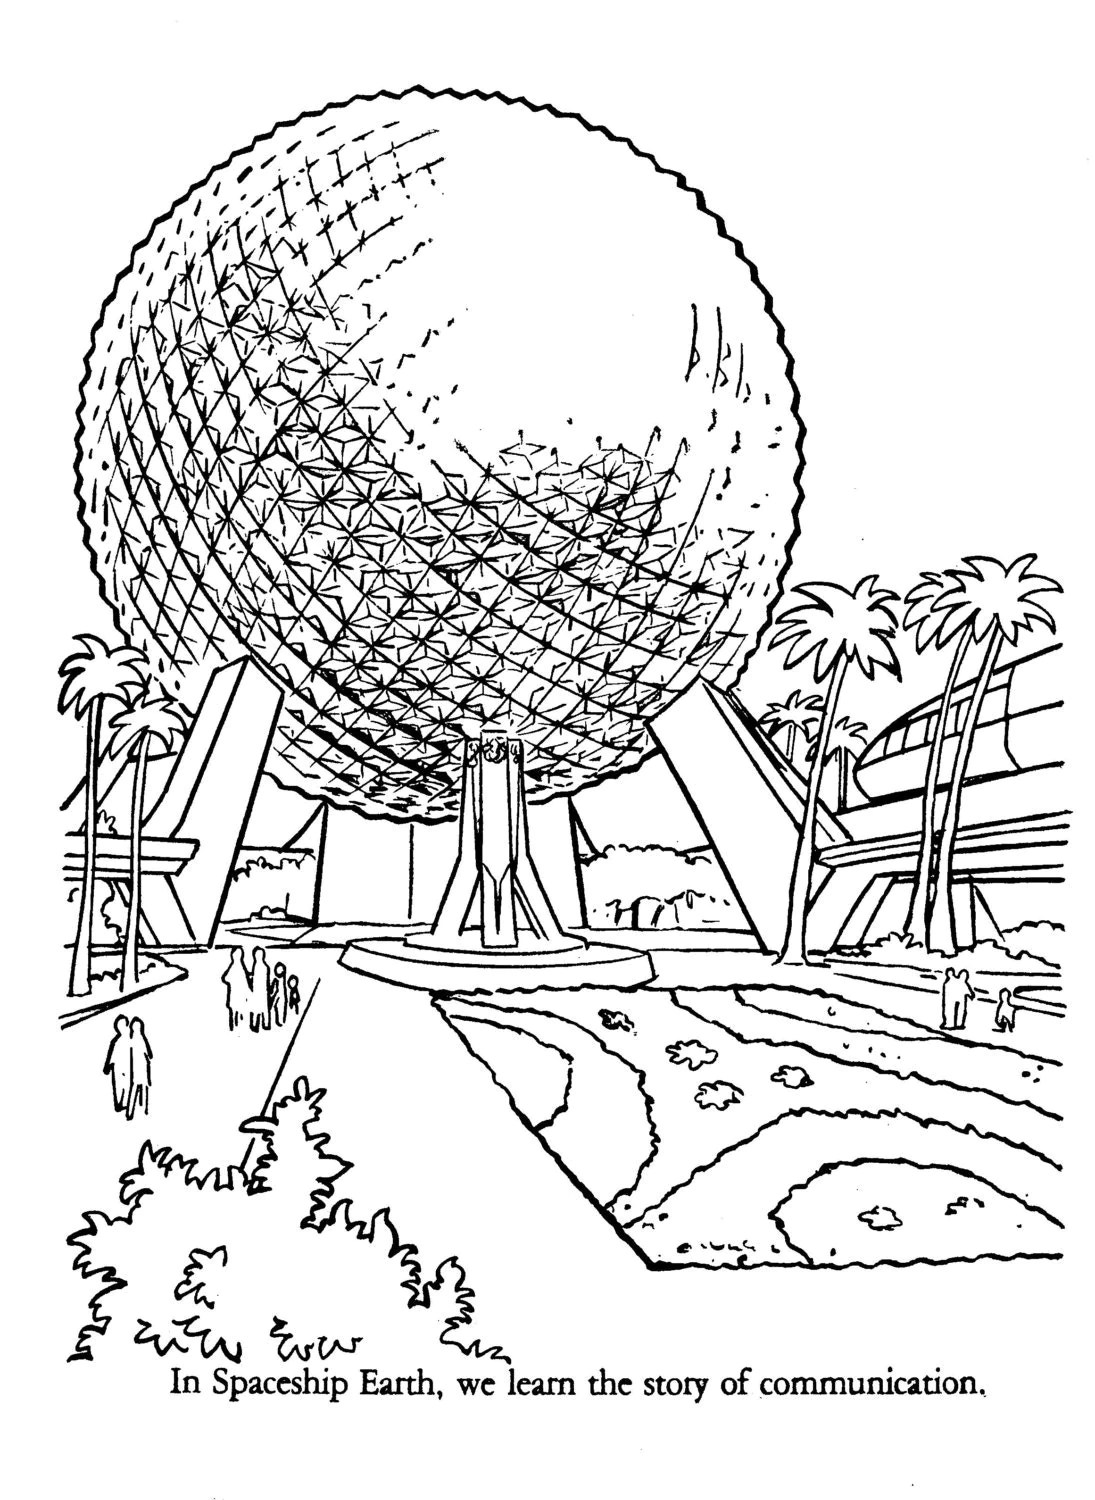 Epcot Center Coloring Book A Golden Book Published in 1983